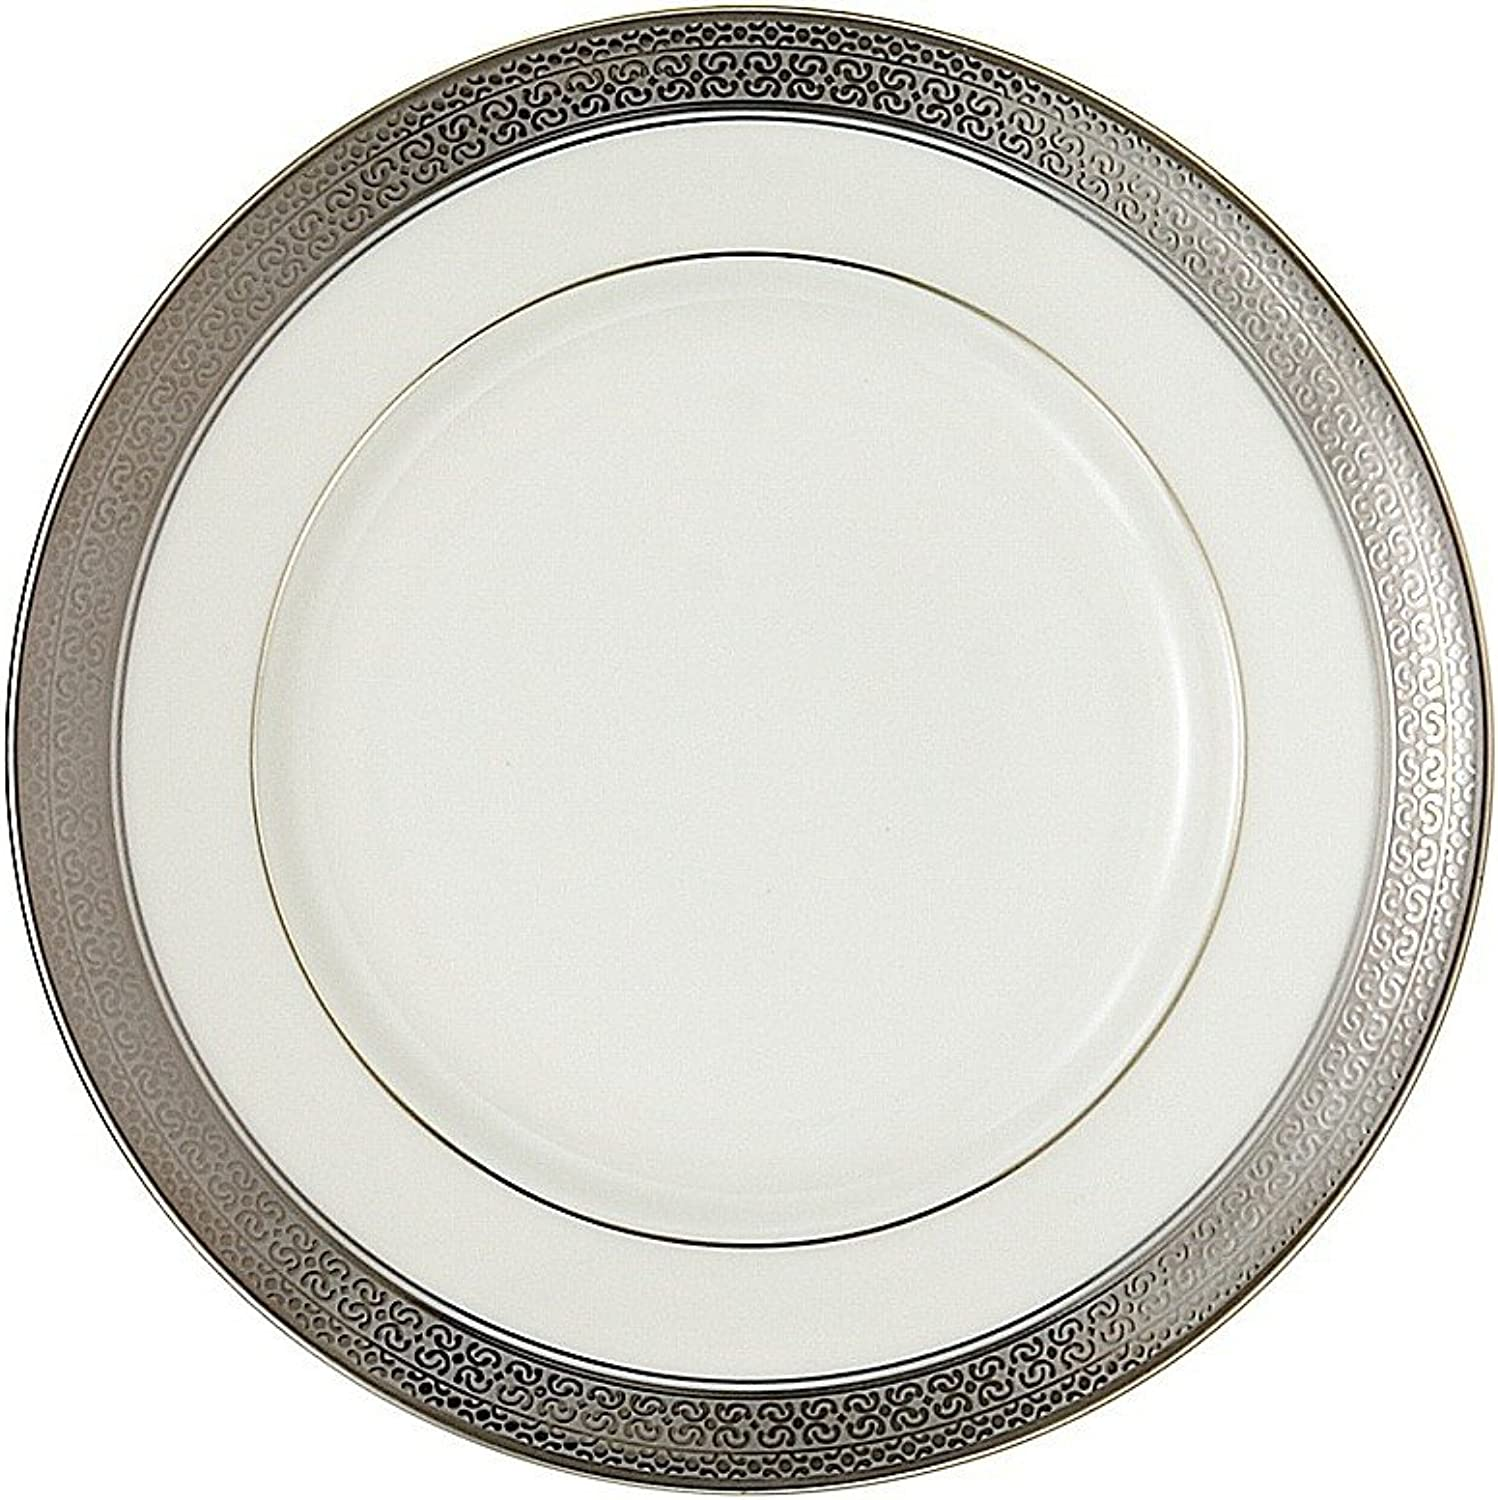 nouveauGRANGE PLATINUM B and B PLATE PS by Waterford